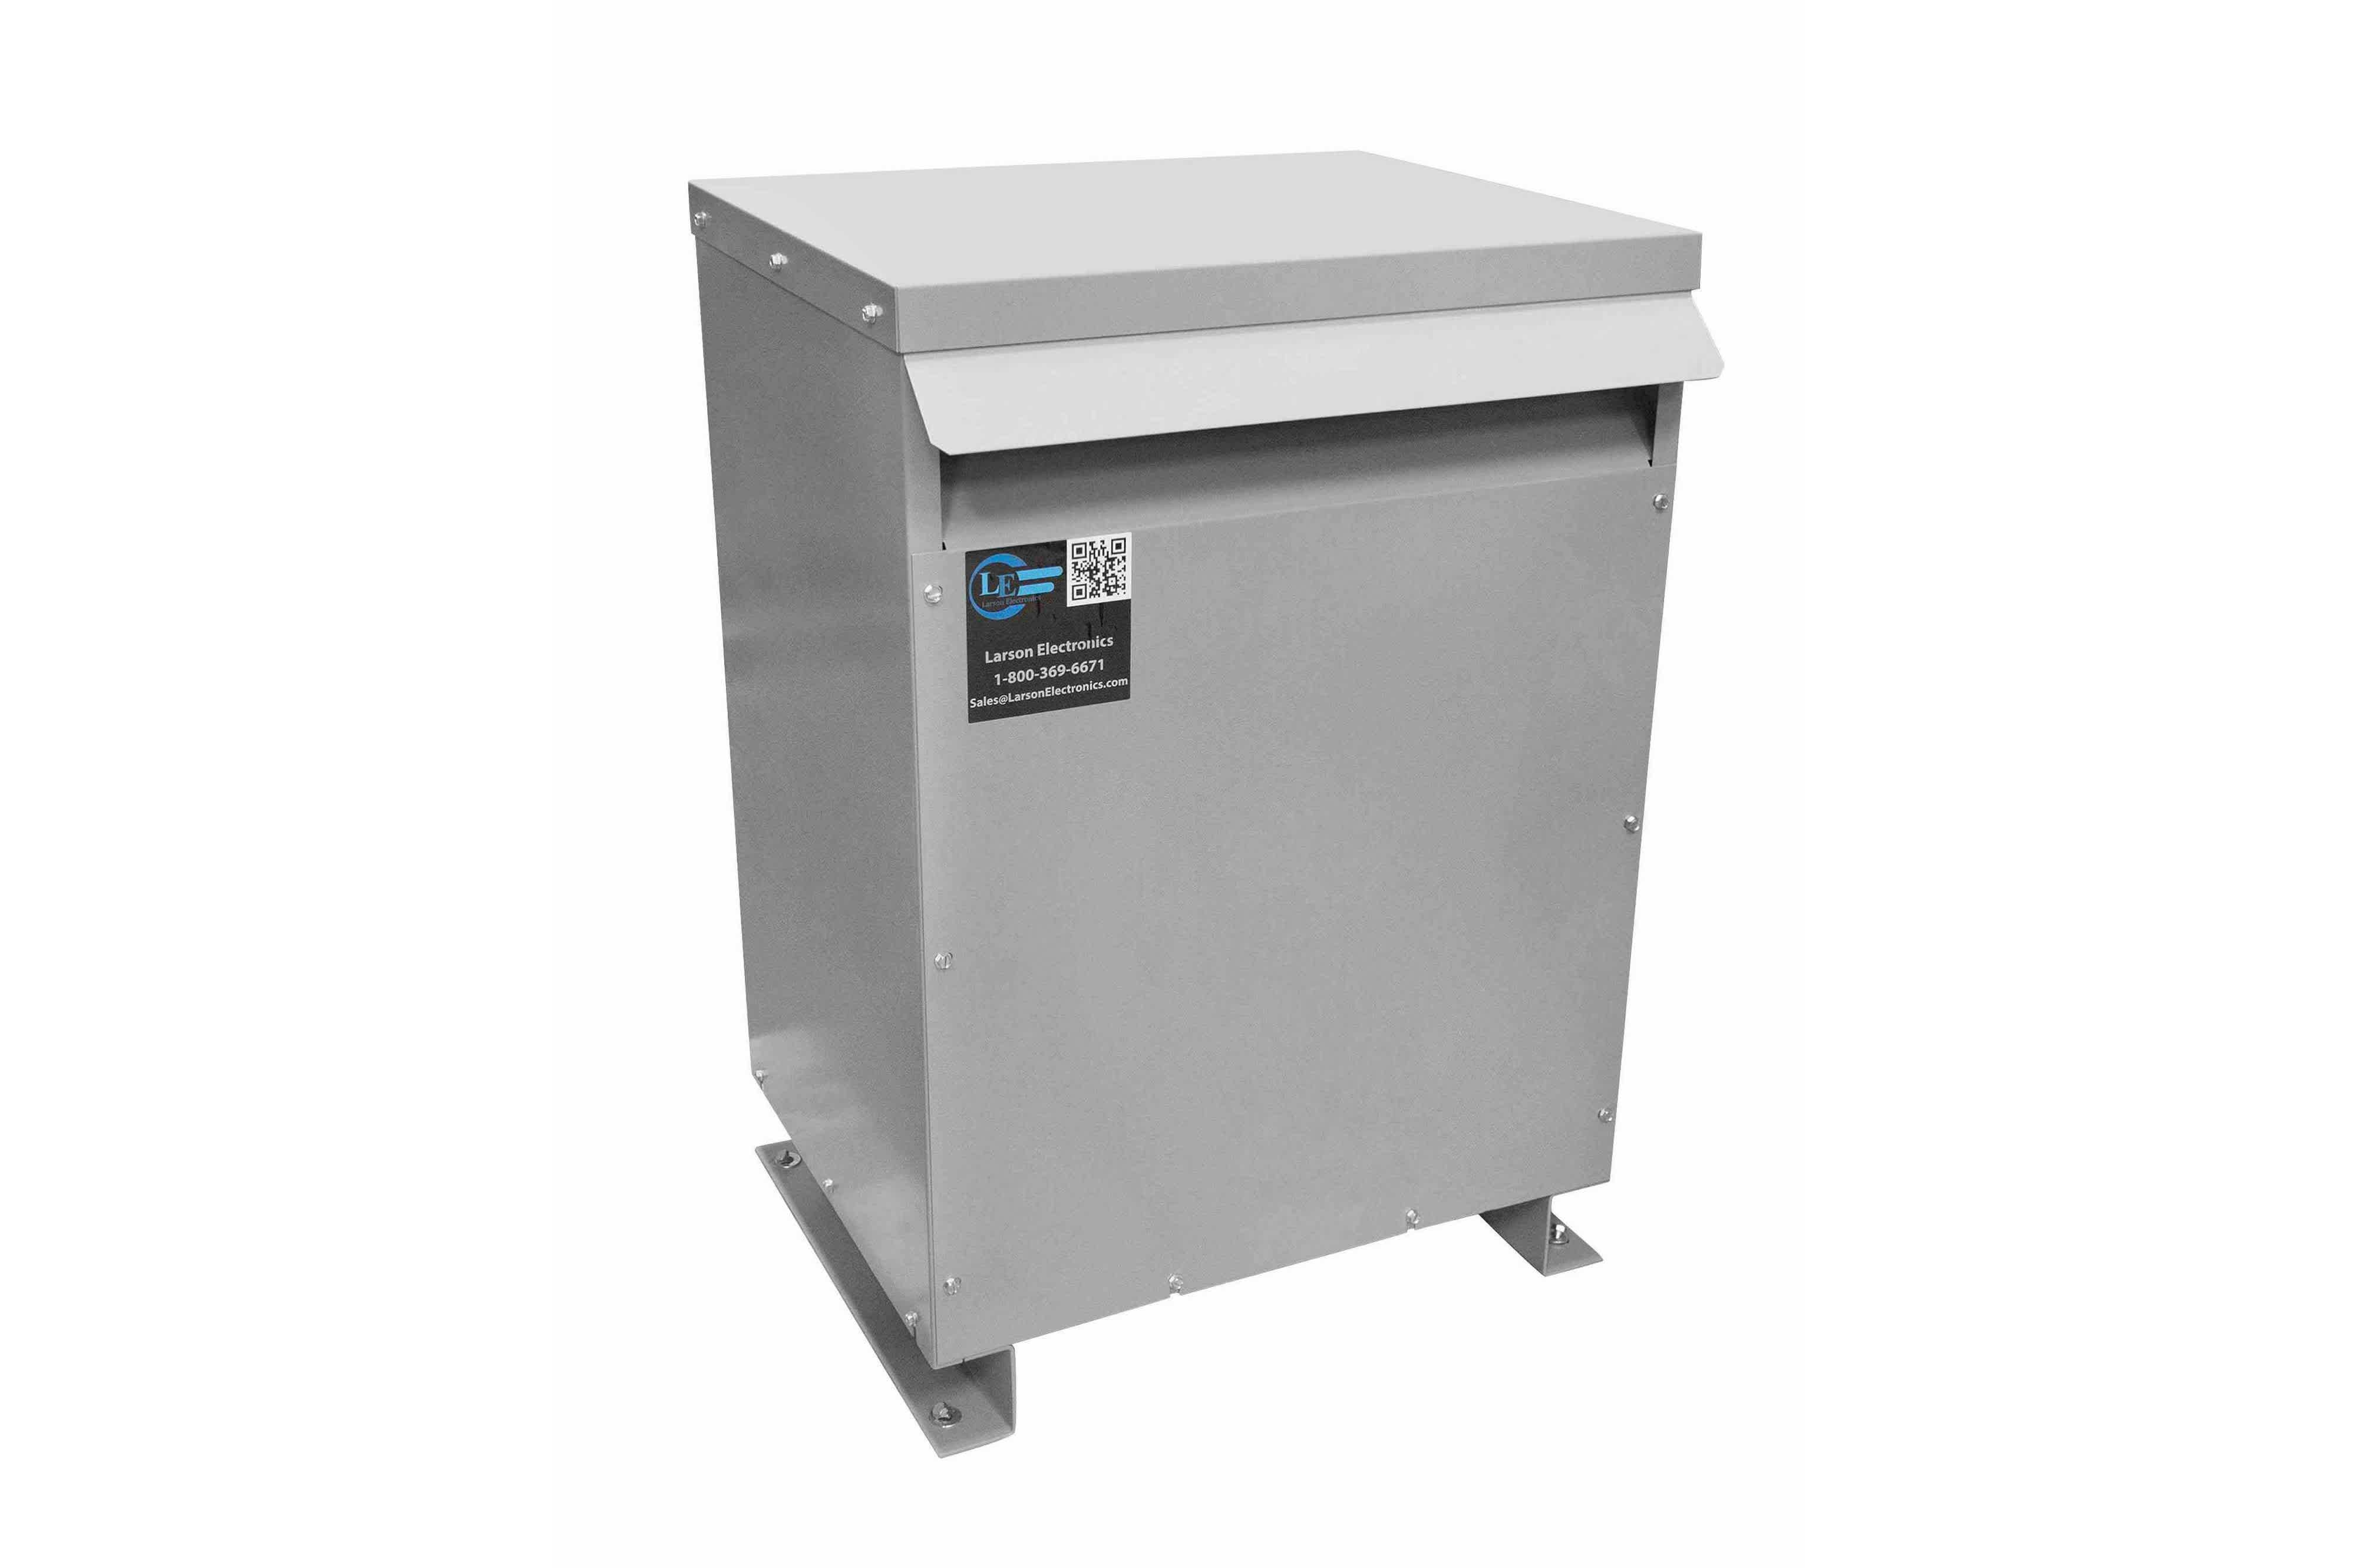 400 kVA 3PH Isolation Transformer, 208V Delta Primary, 415V Delta Secondary, N3R, Ventilated, 60 Hz